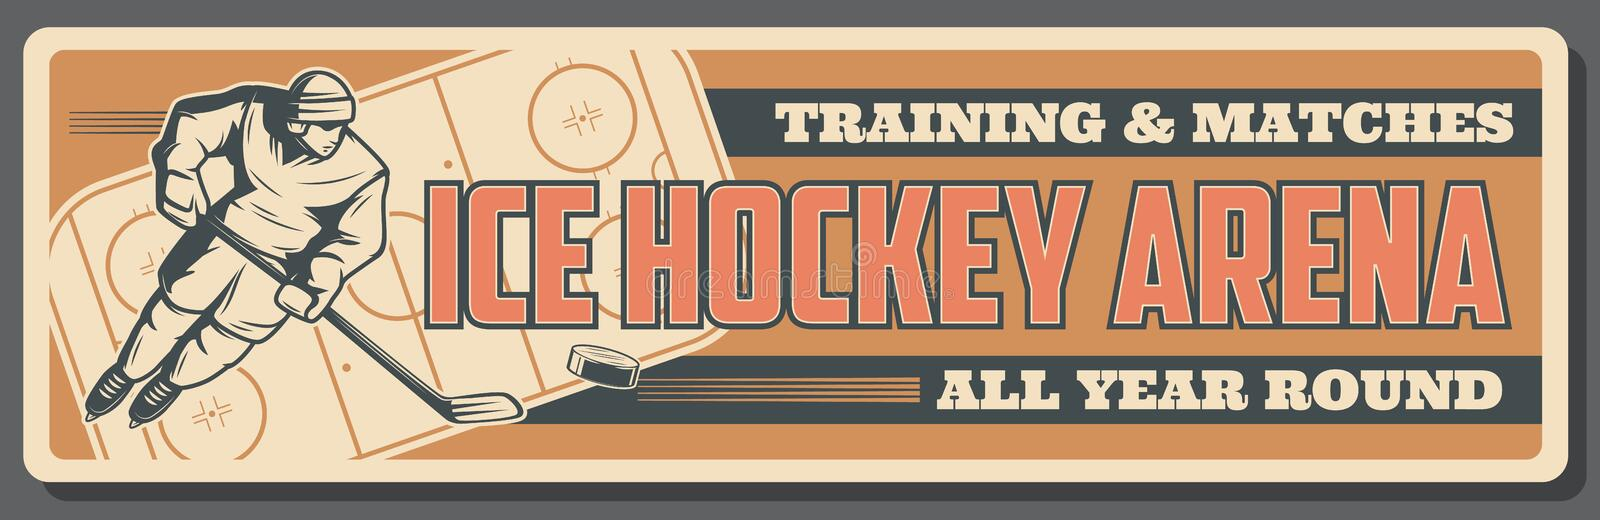 Ice hockey matches and training sport arena stock illustration